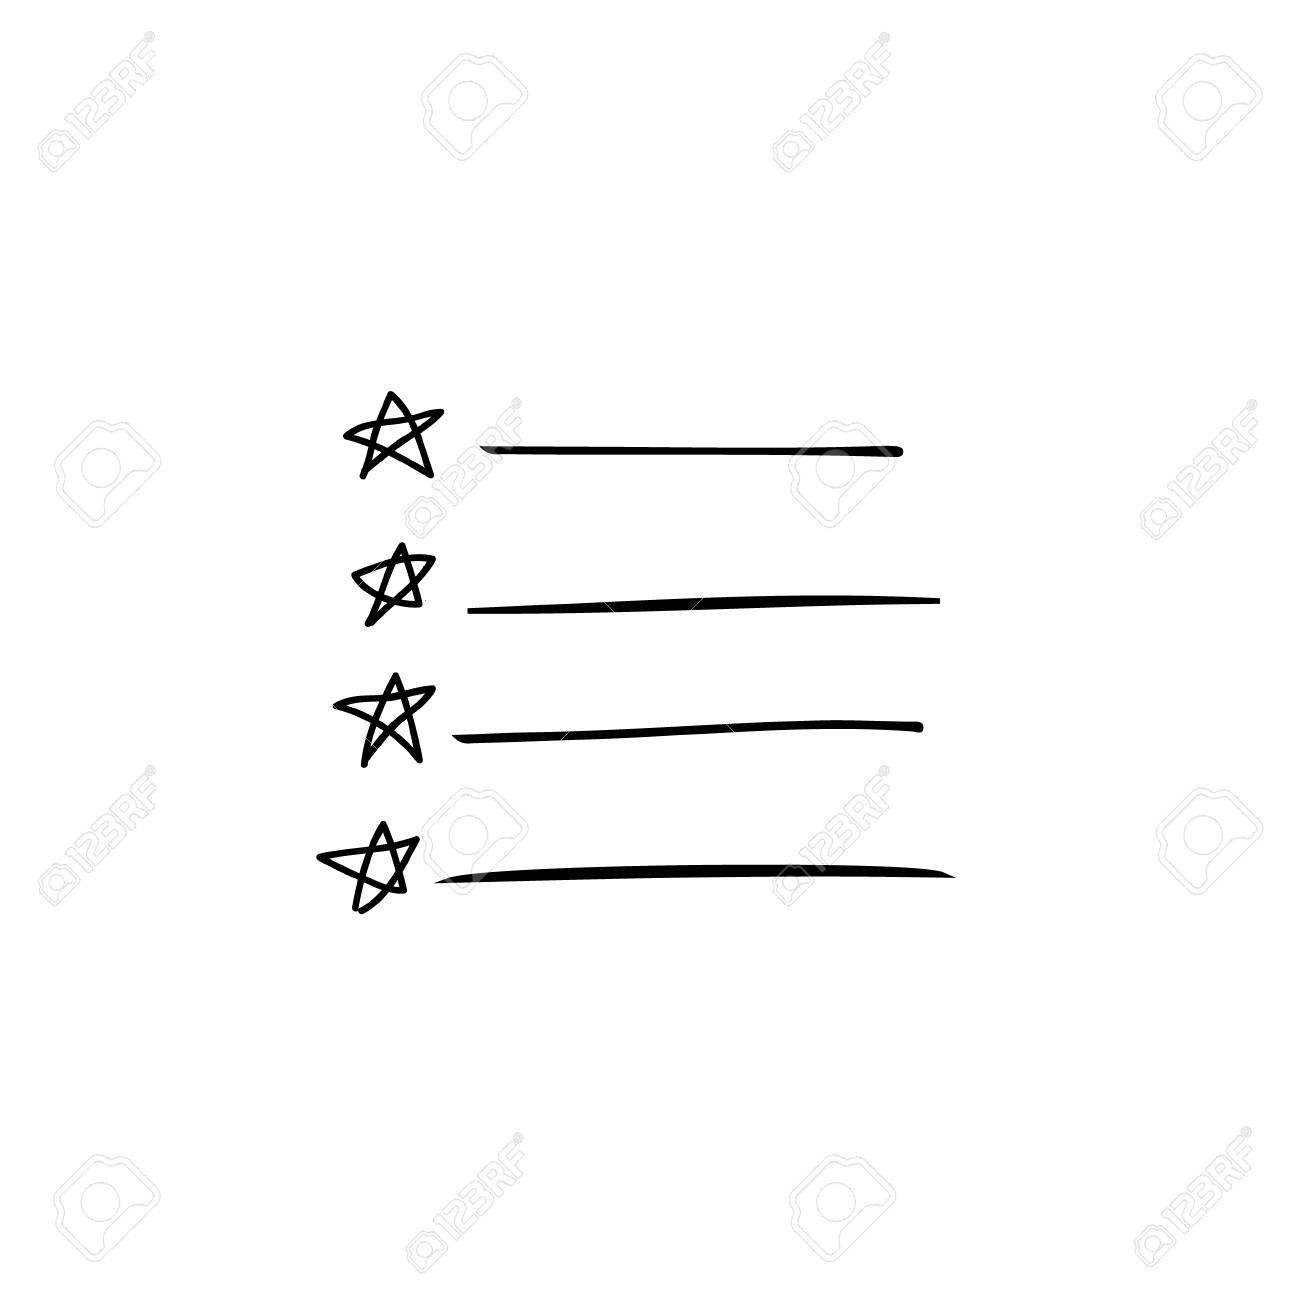 check list, task list, to do list vector icon with check marks